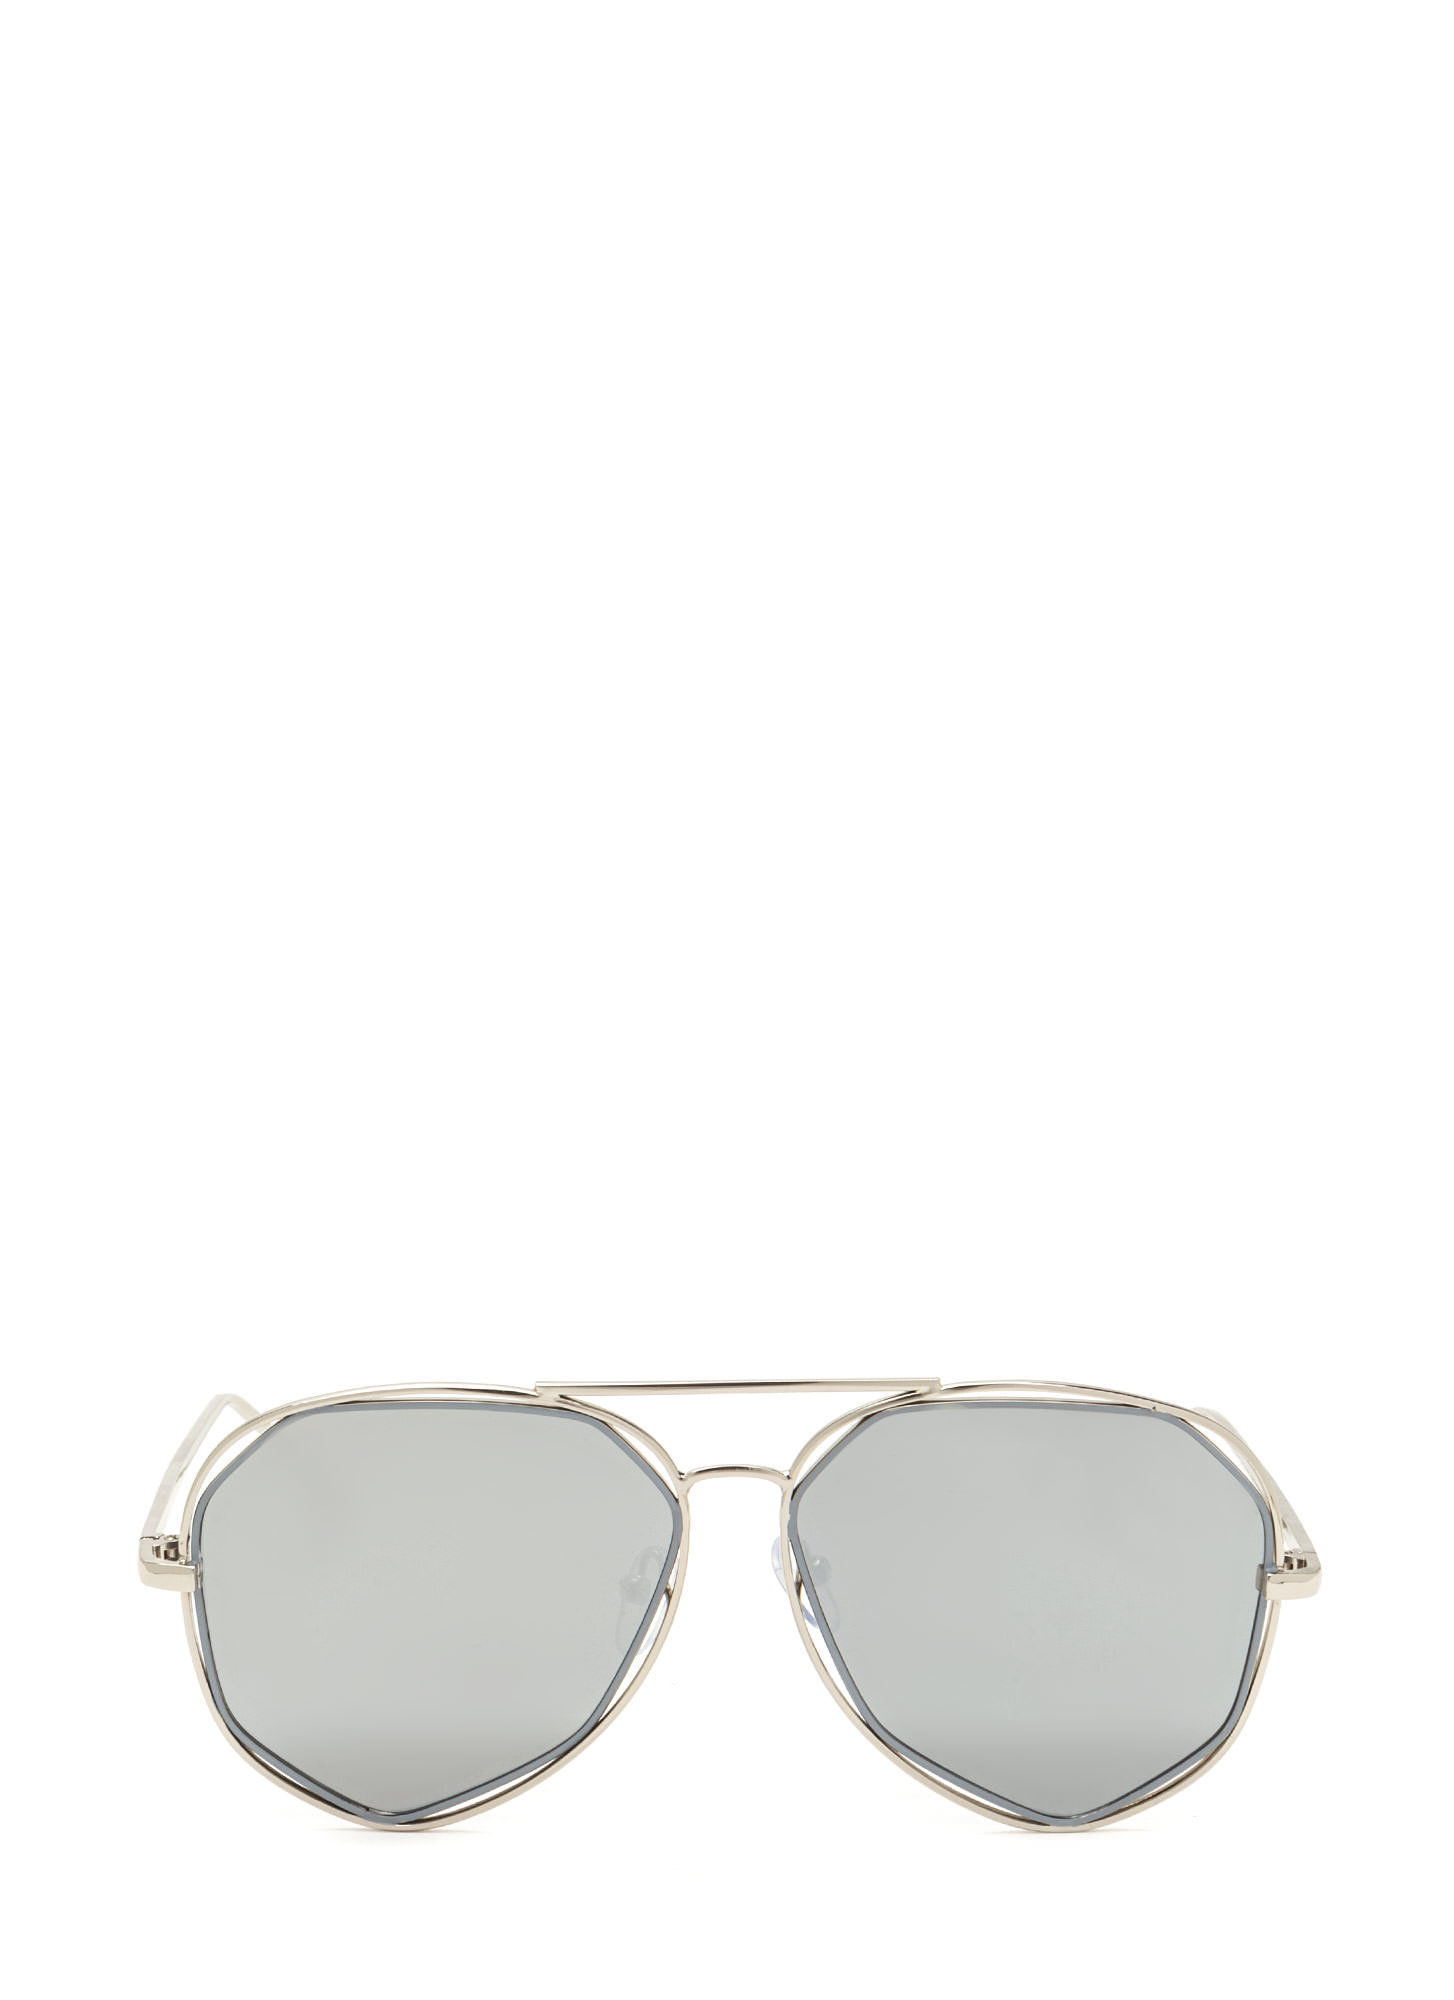 Get In Shapes Flat Aviator Sunglasses SILVER